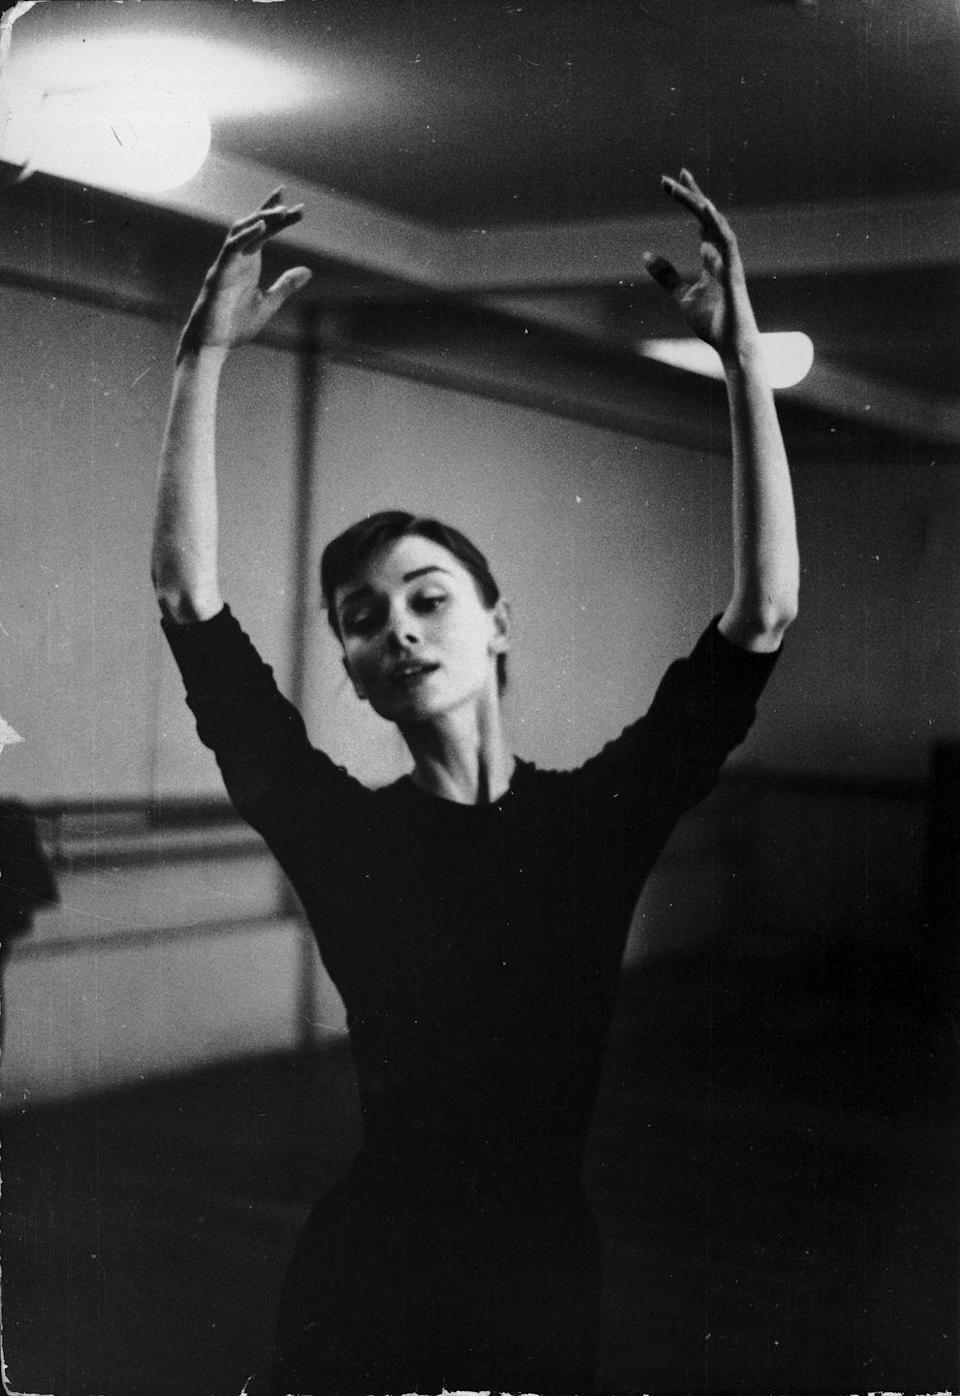 """<p>Suddenly the gracefulness of Audrey Hepburn makes sense. The <em>Breakfast at Tiffany's </em>actress took up ballet during World War II when her family fled to the Netherlands. Audrey trained at the Arnhem Conservatory and was the """"<a href=""""https://www.vintag.es/2018/12/audrey-hepburn-ballet-dancing.html"""" rel=""""nofollow noopener"""" target=""""_blank"""" data-ylk=""""slk:star pupil"""" class=""""link rapid-noclick-resp"""">star pupil</a>."""" After that, she became a student of Dutch ballerina Sonia Gaskell. </p><p>When her family moved to London in 1948, she was offered a spot at Ballet Rambert only to be told her height and physique was not suitable for a career as a professional ballerina.</p>"""